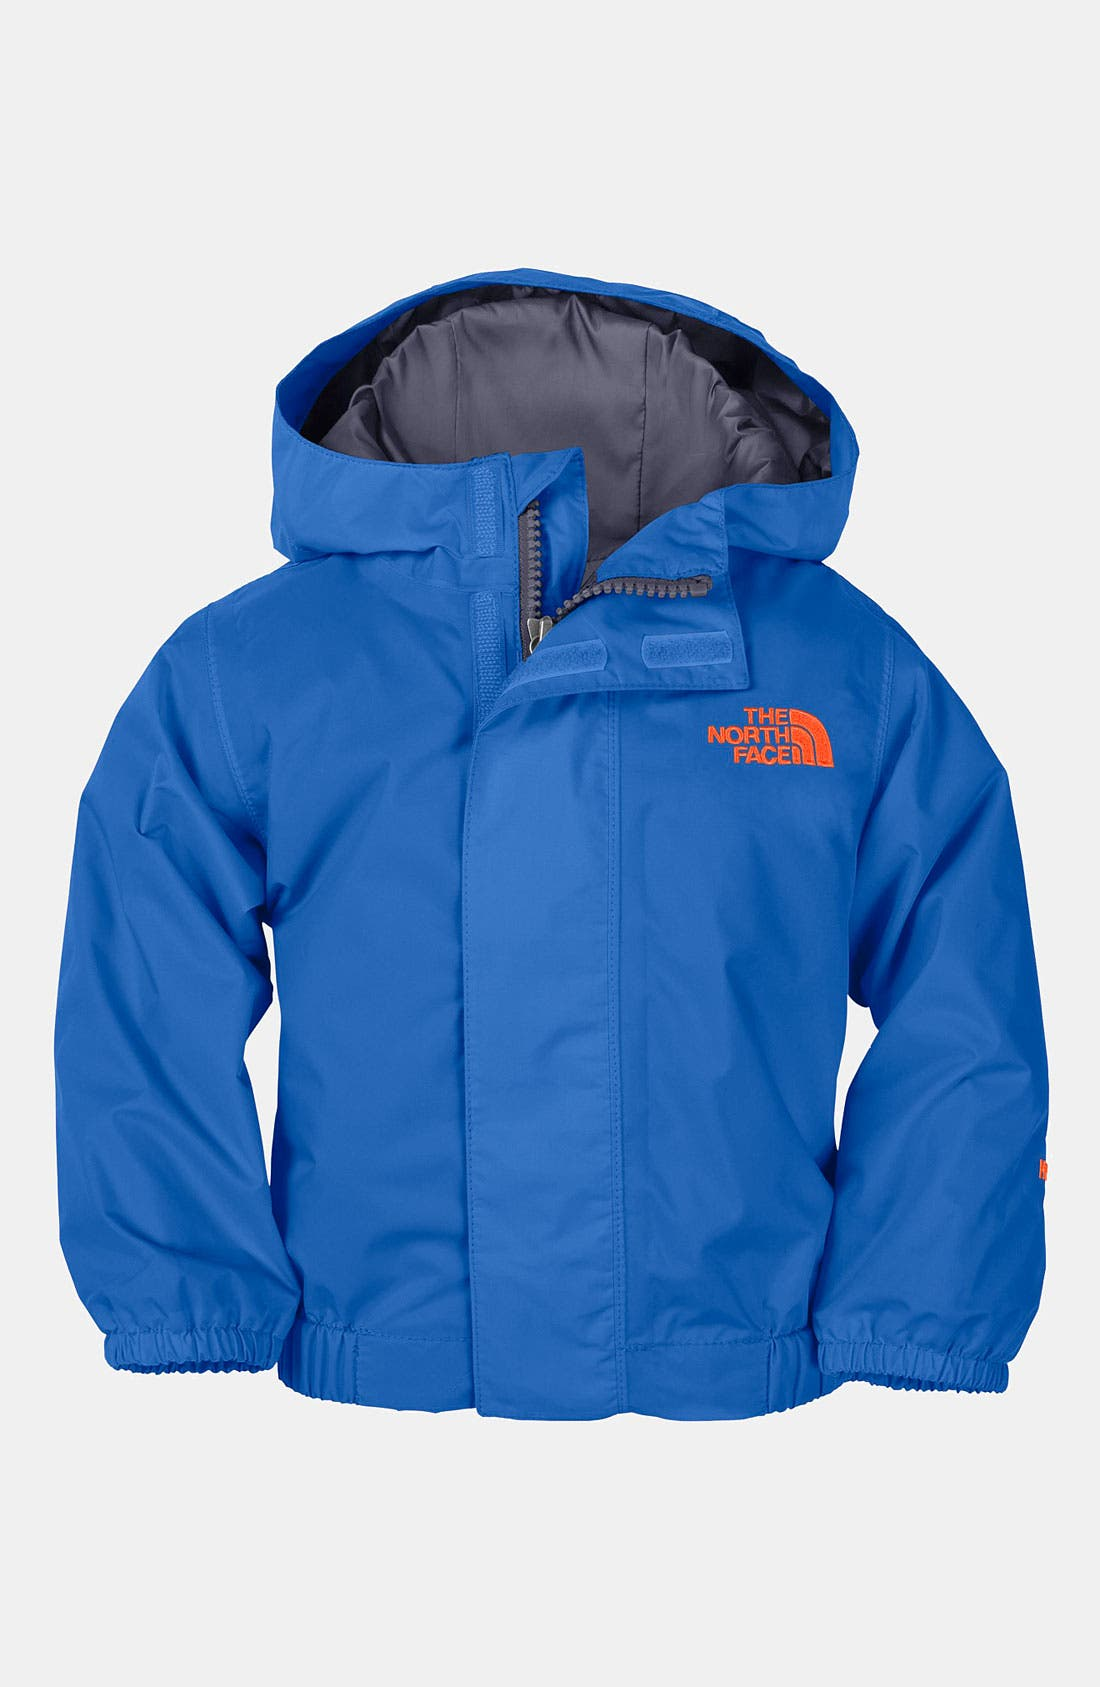 Alternate Image 1 Selected - The North Face 'Tailout' Raincoat (Baby)